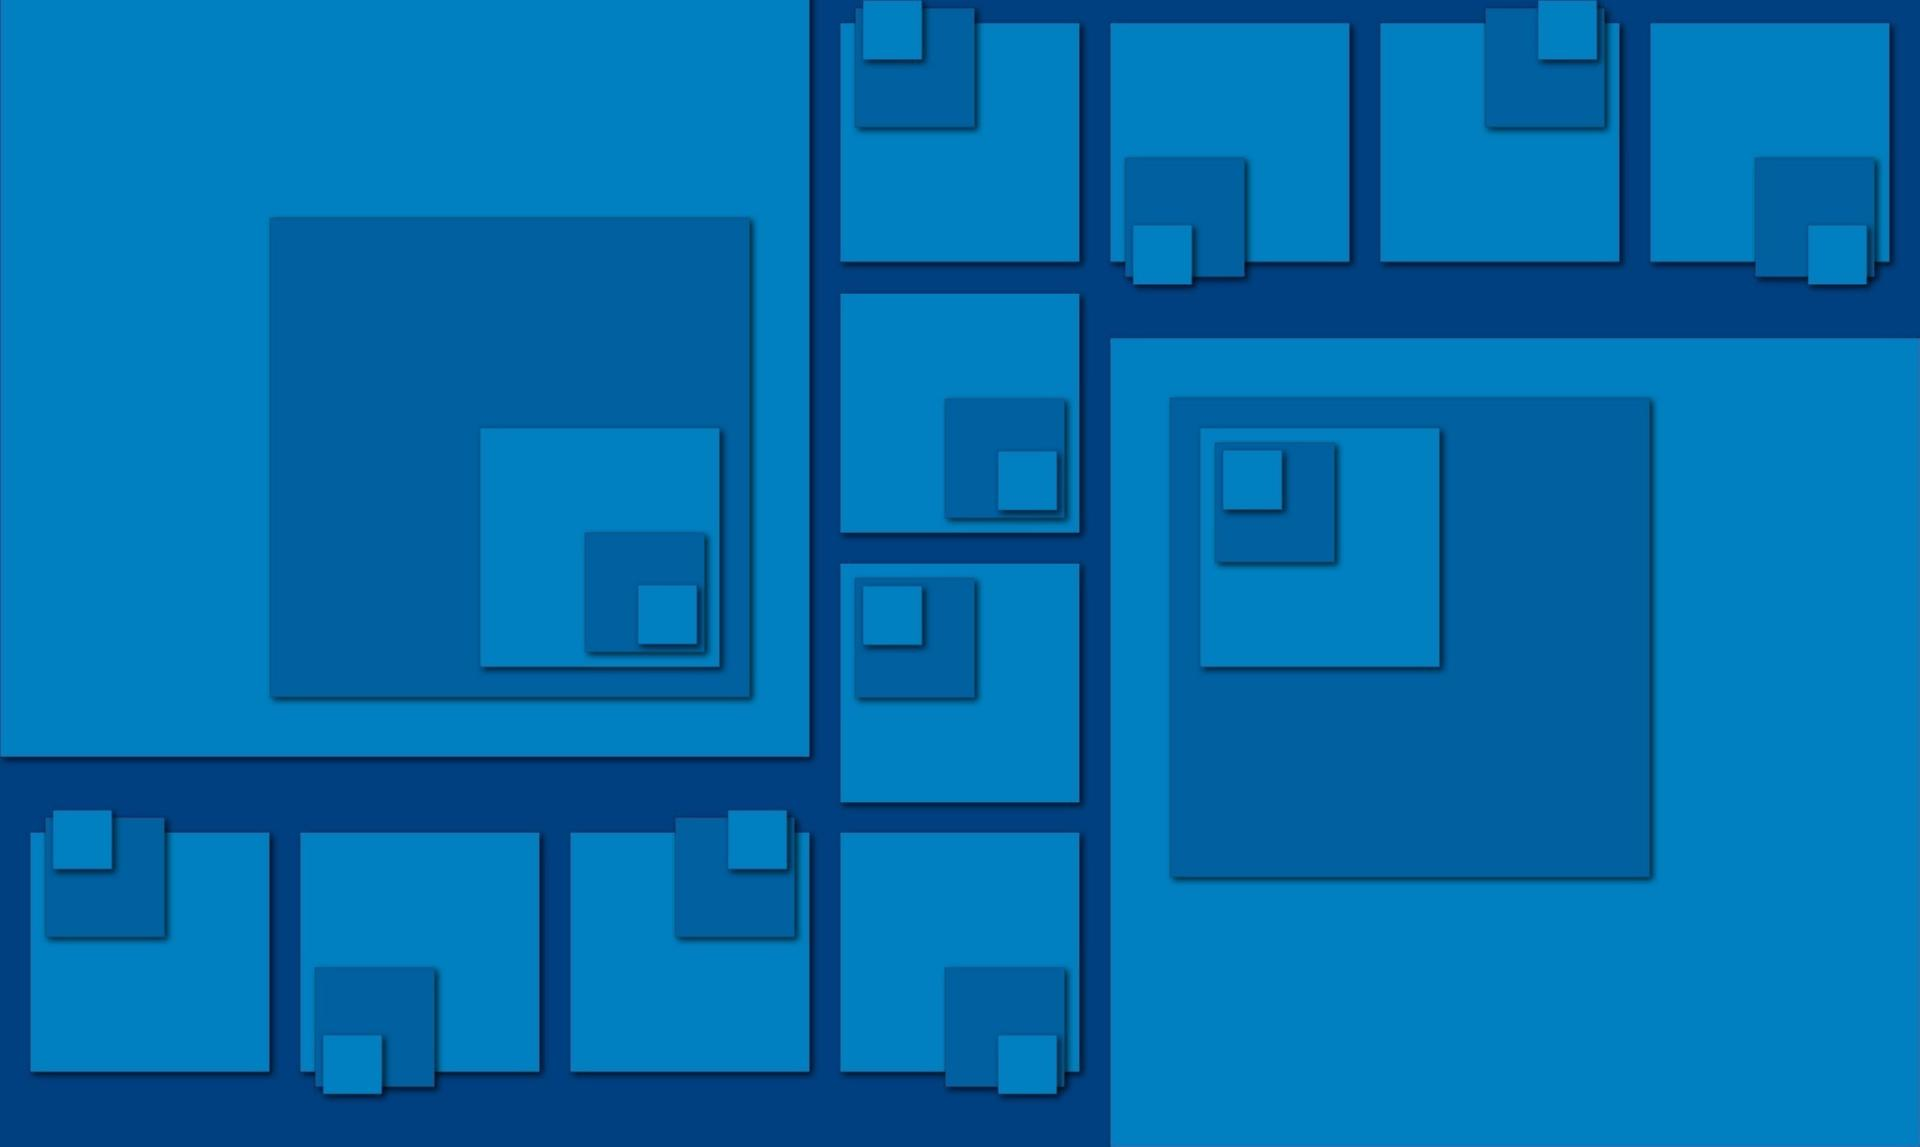 Blue squares wallpapers HD quality